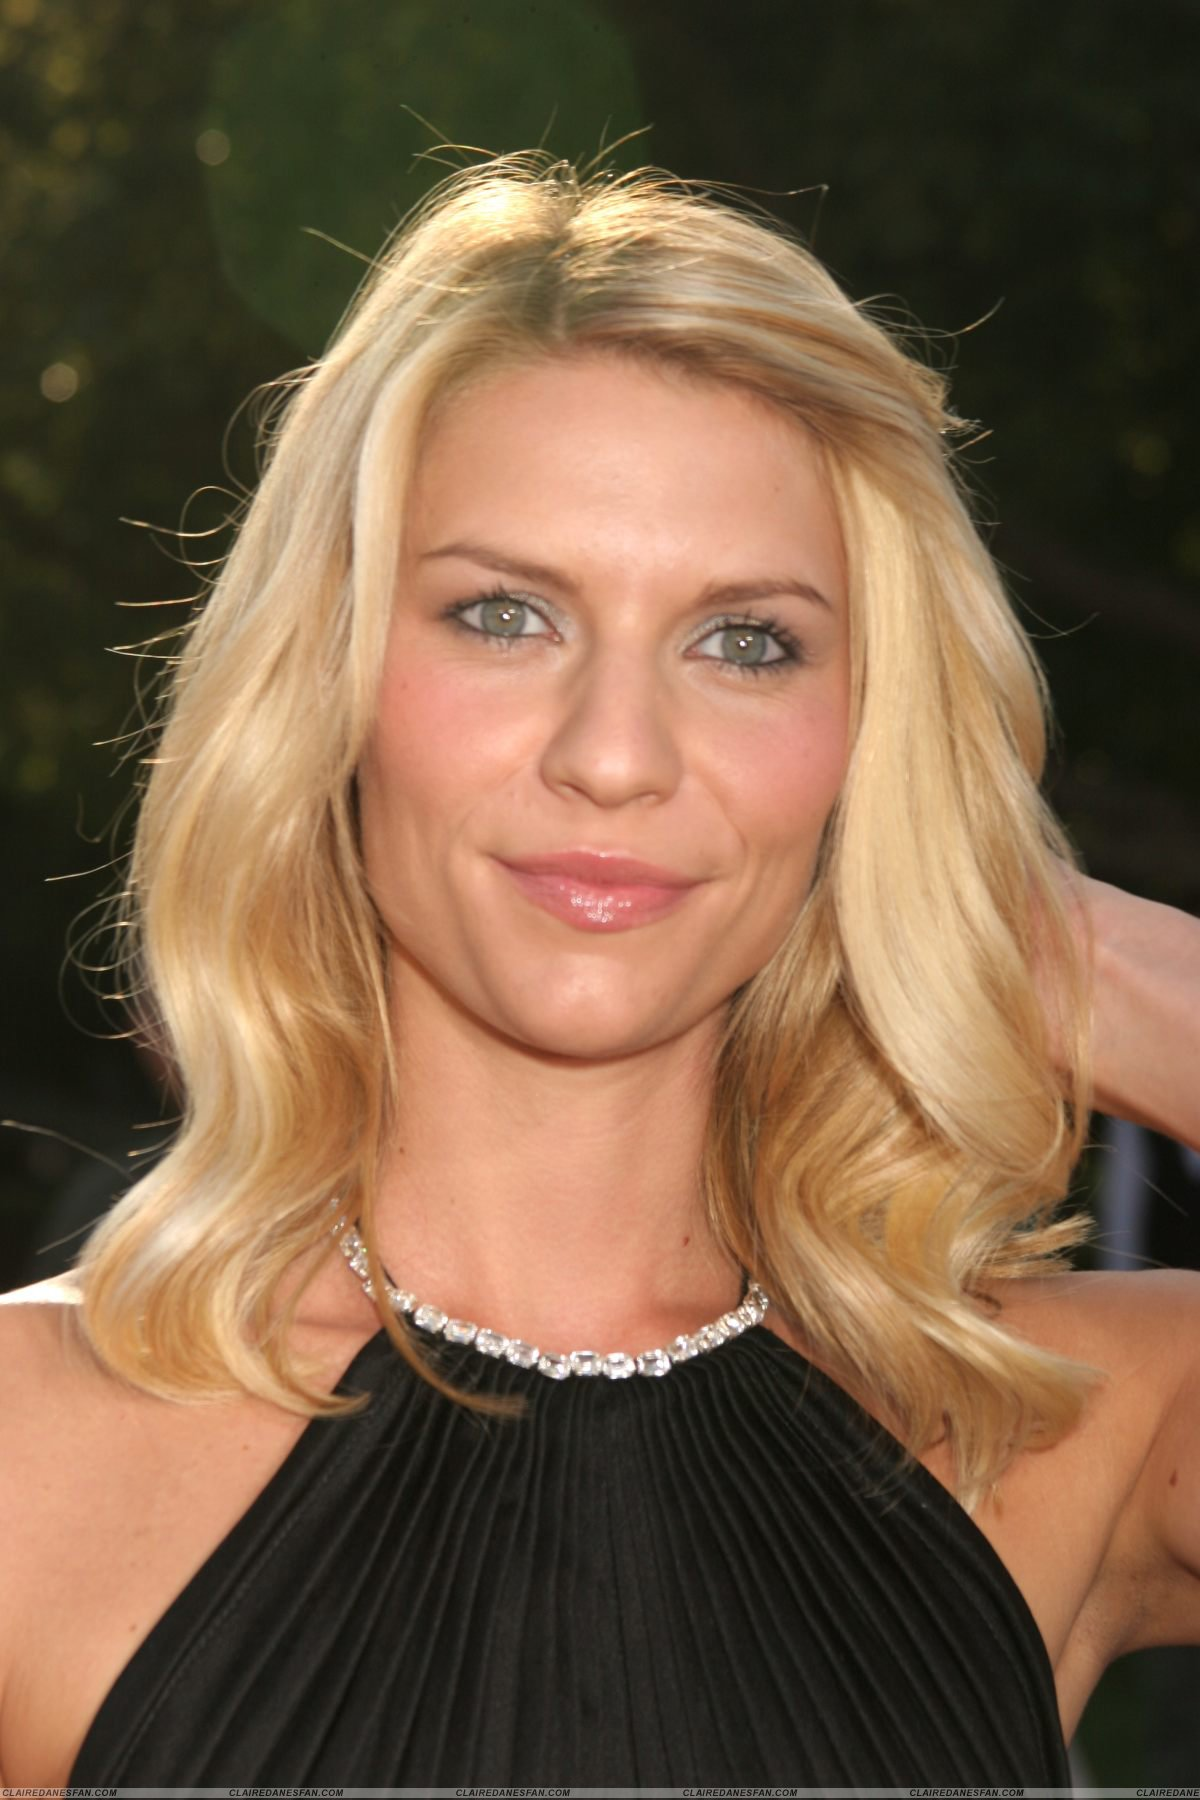 High Resolution Wallpaper | Claire Danes 1200x1800 px